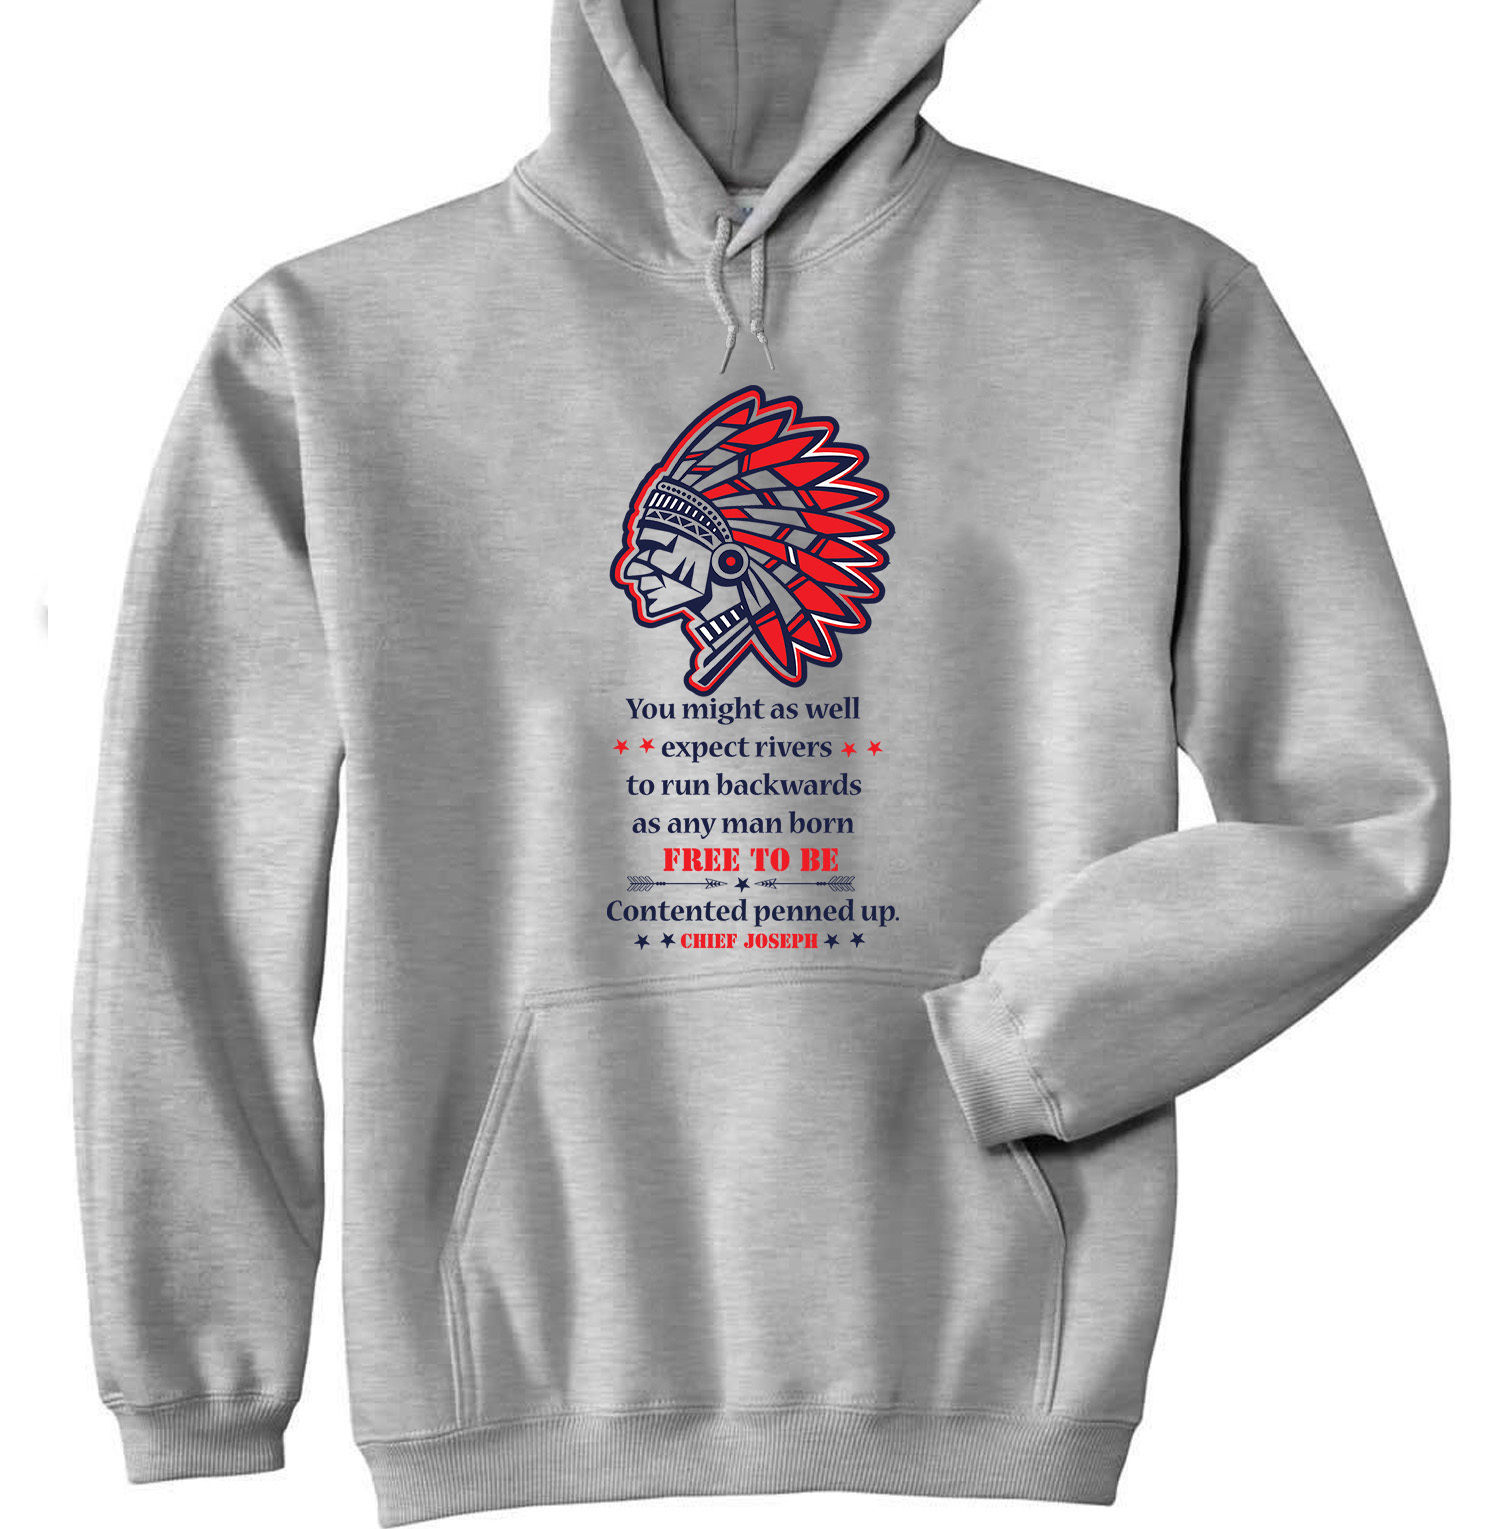 CHIEF JOSEPH FREE TO BE - NEW COTTON GREY HOODIE